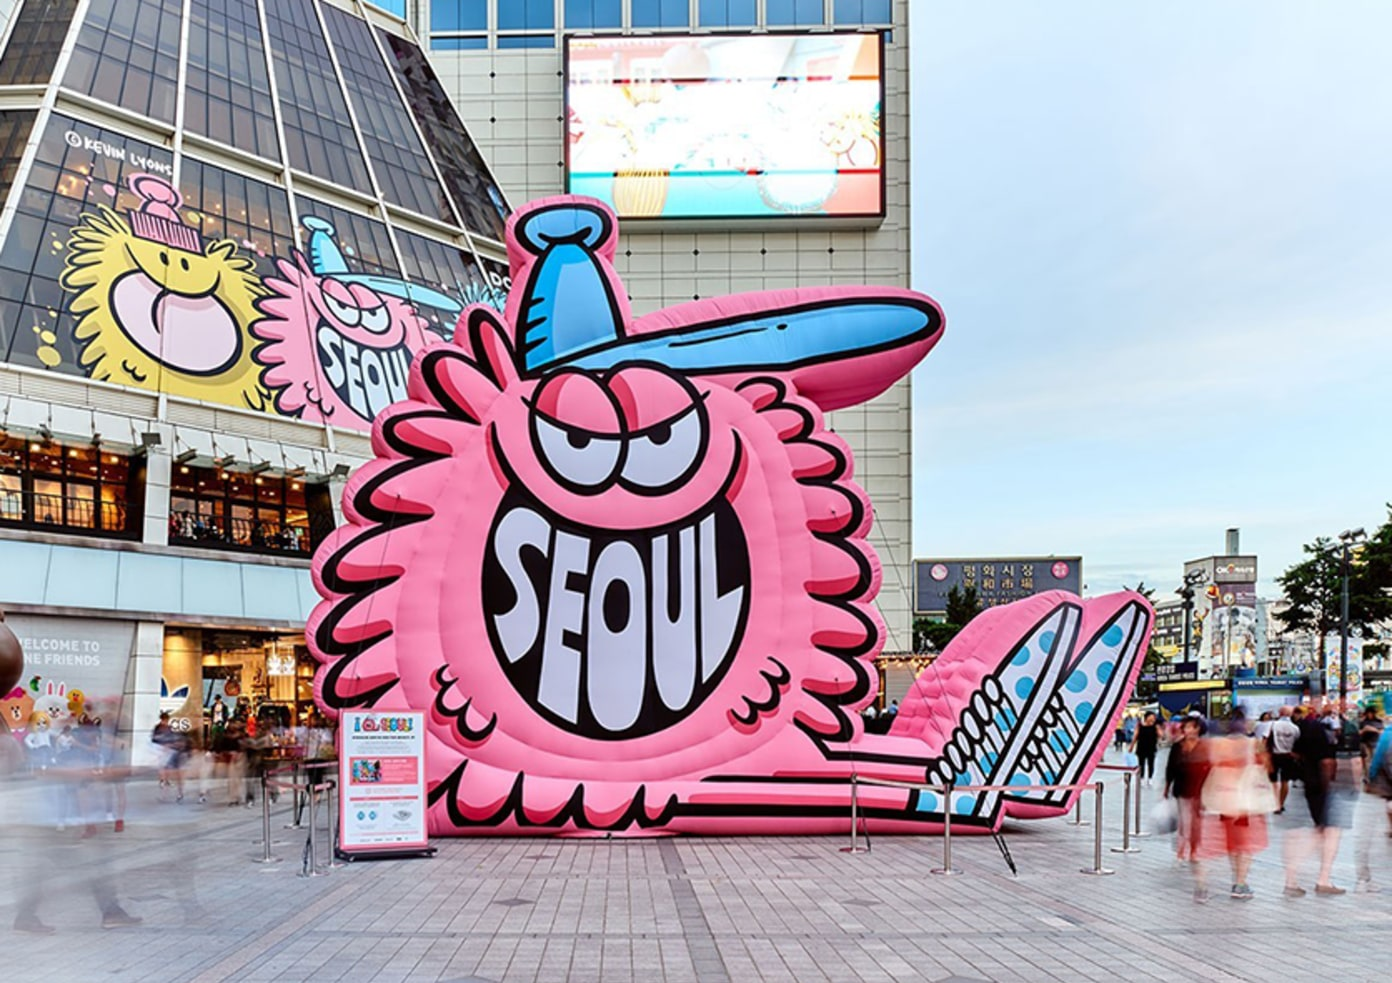 Kevin Lyons Takes Over a Mall in Seoul